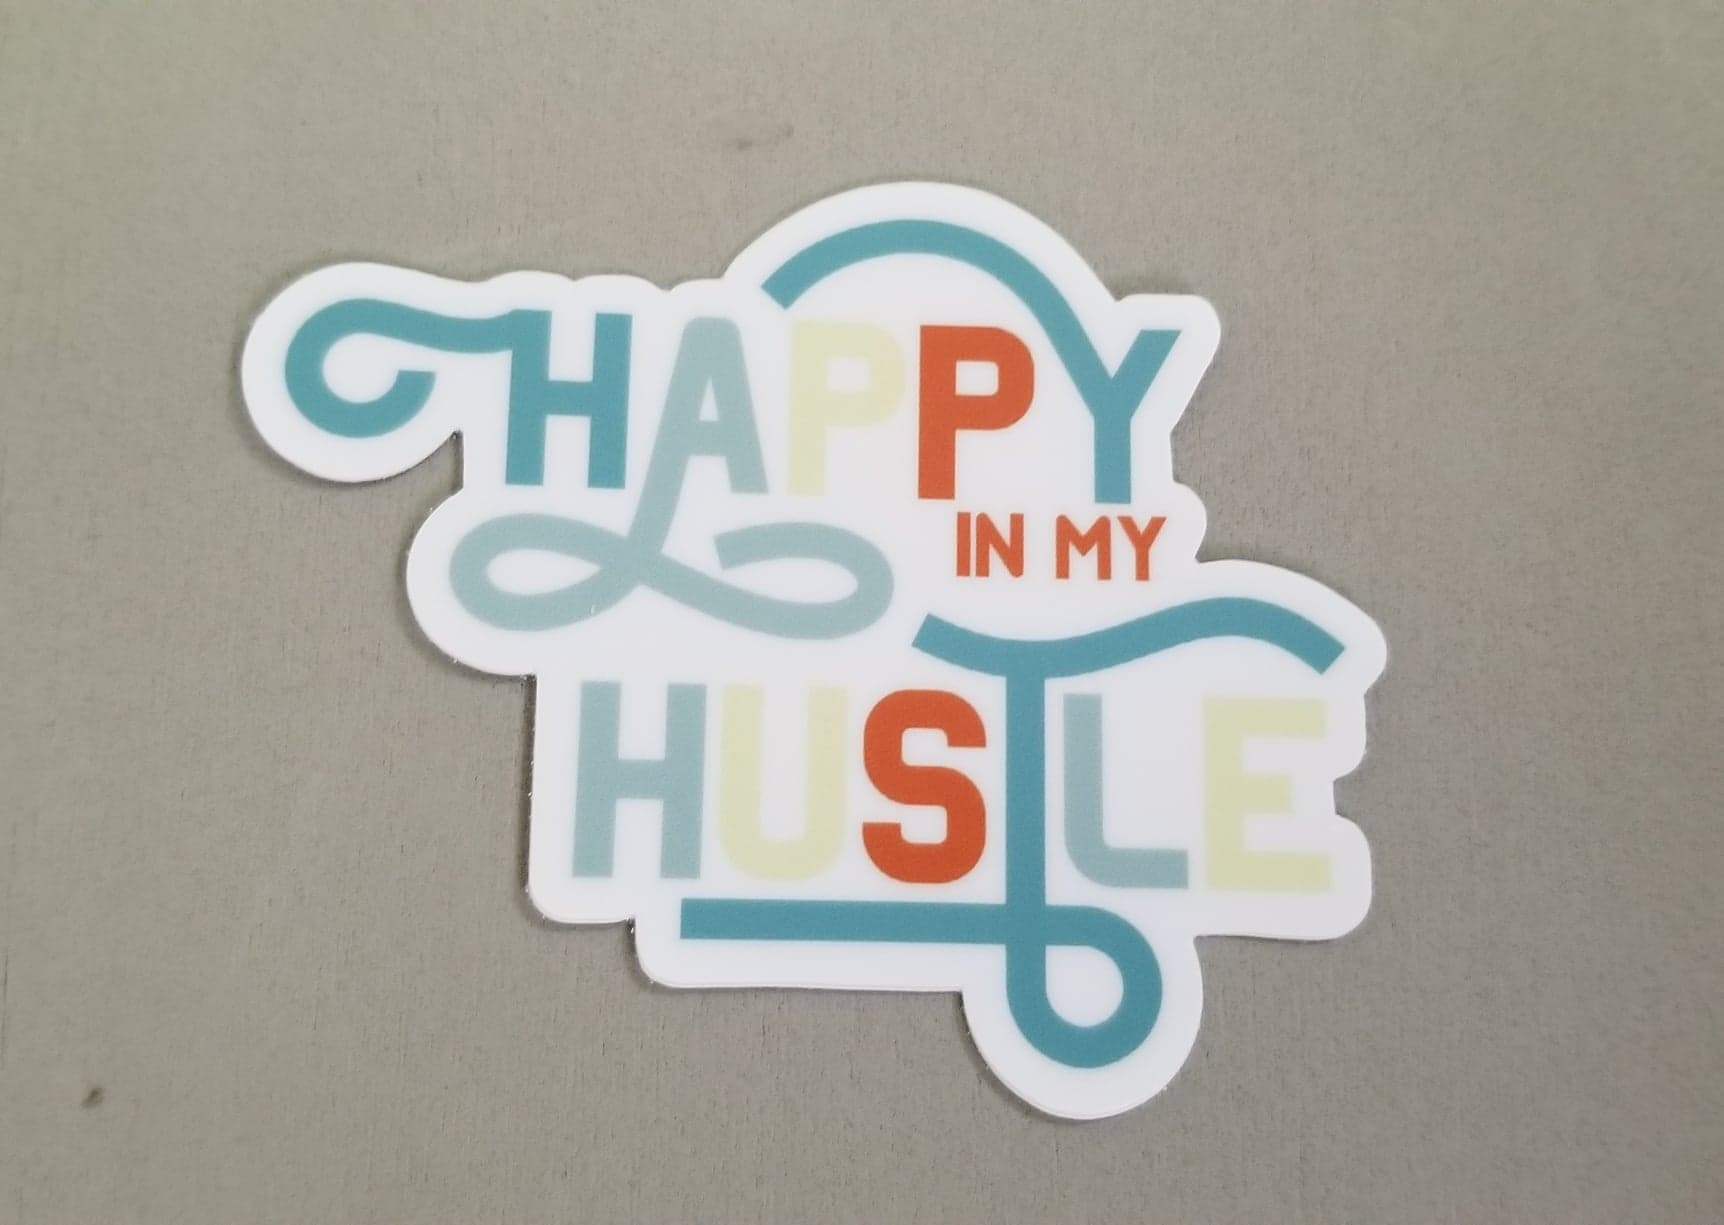 Waterproof Sticker | Happy in my hustle sticker